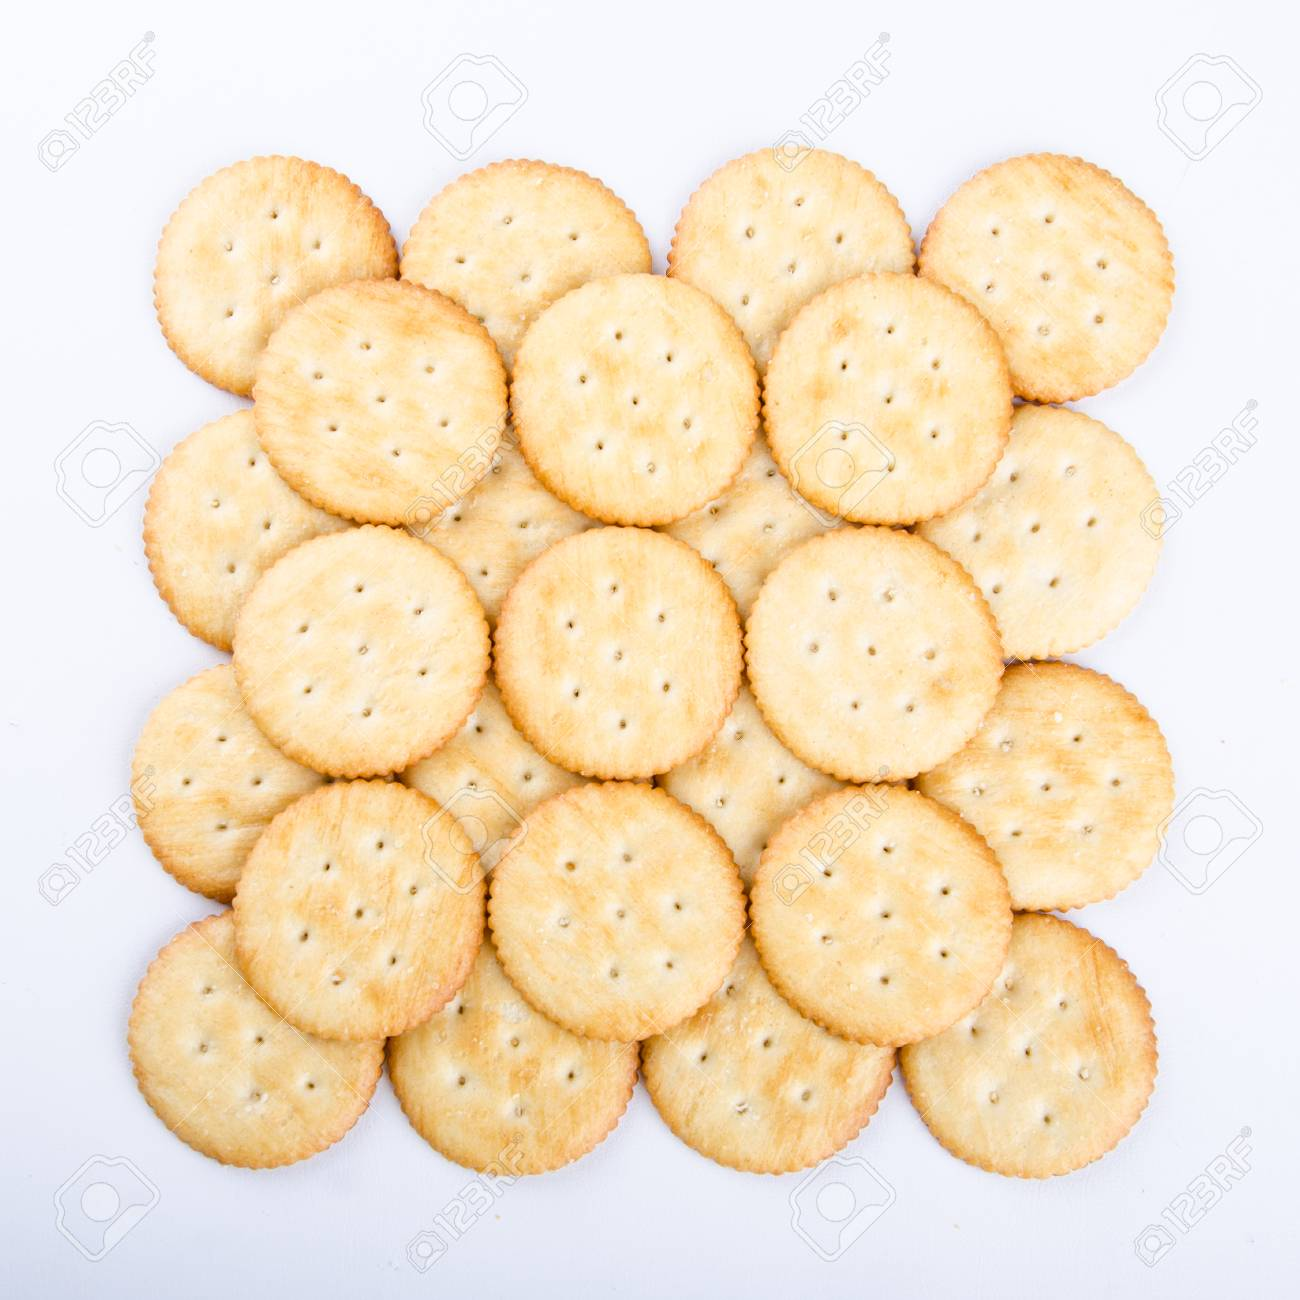 Cracker Wallpaper Background Stock Photo Picture And Royalty 1300x1300